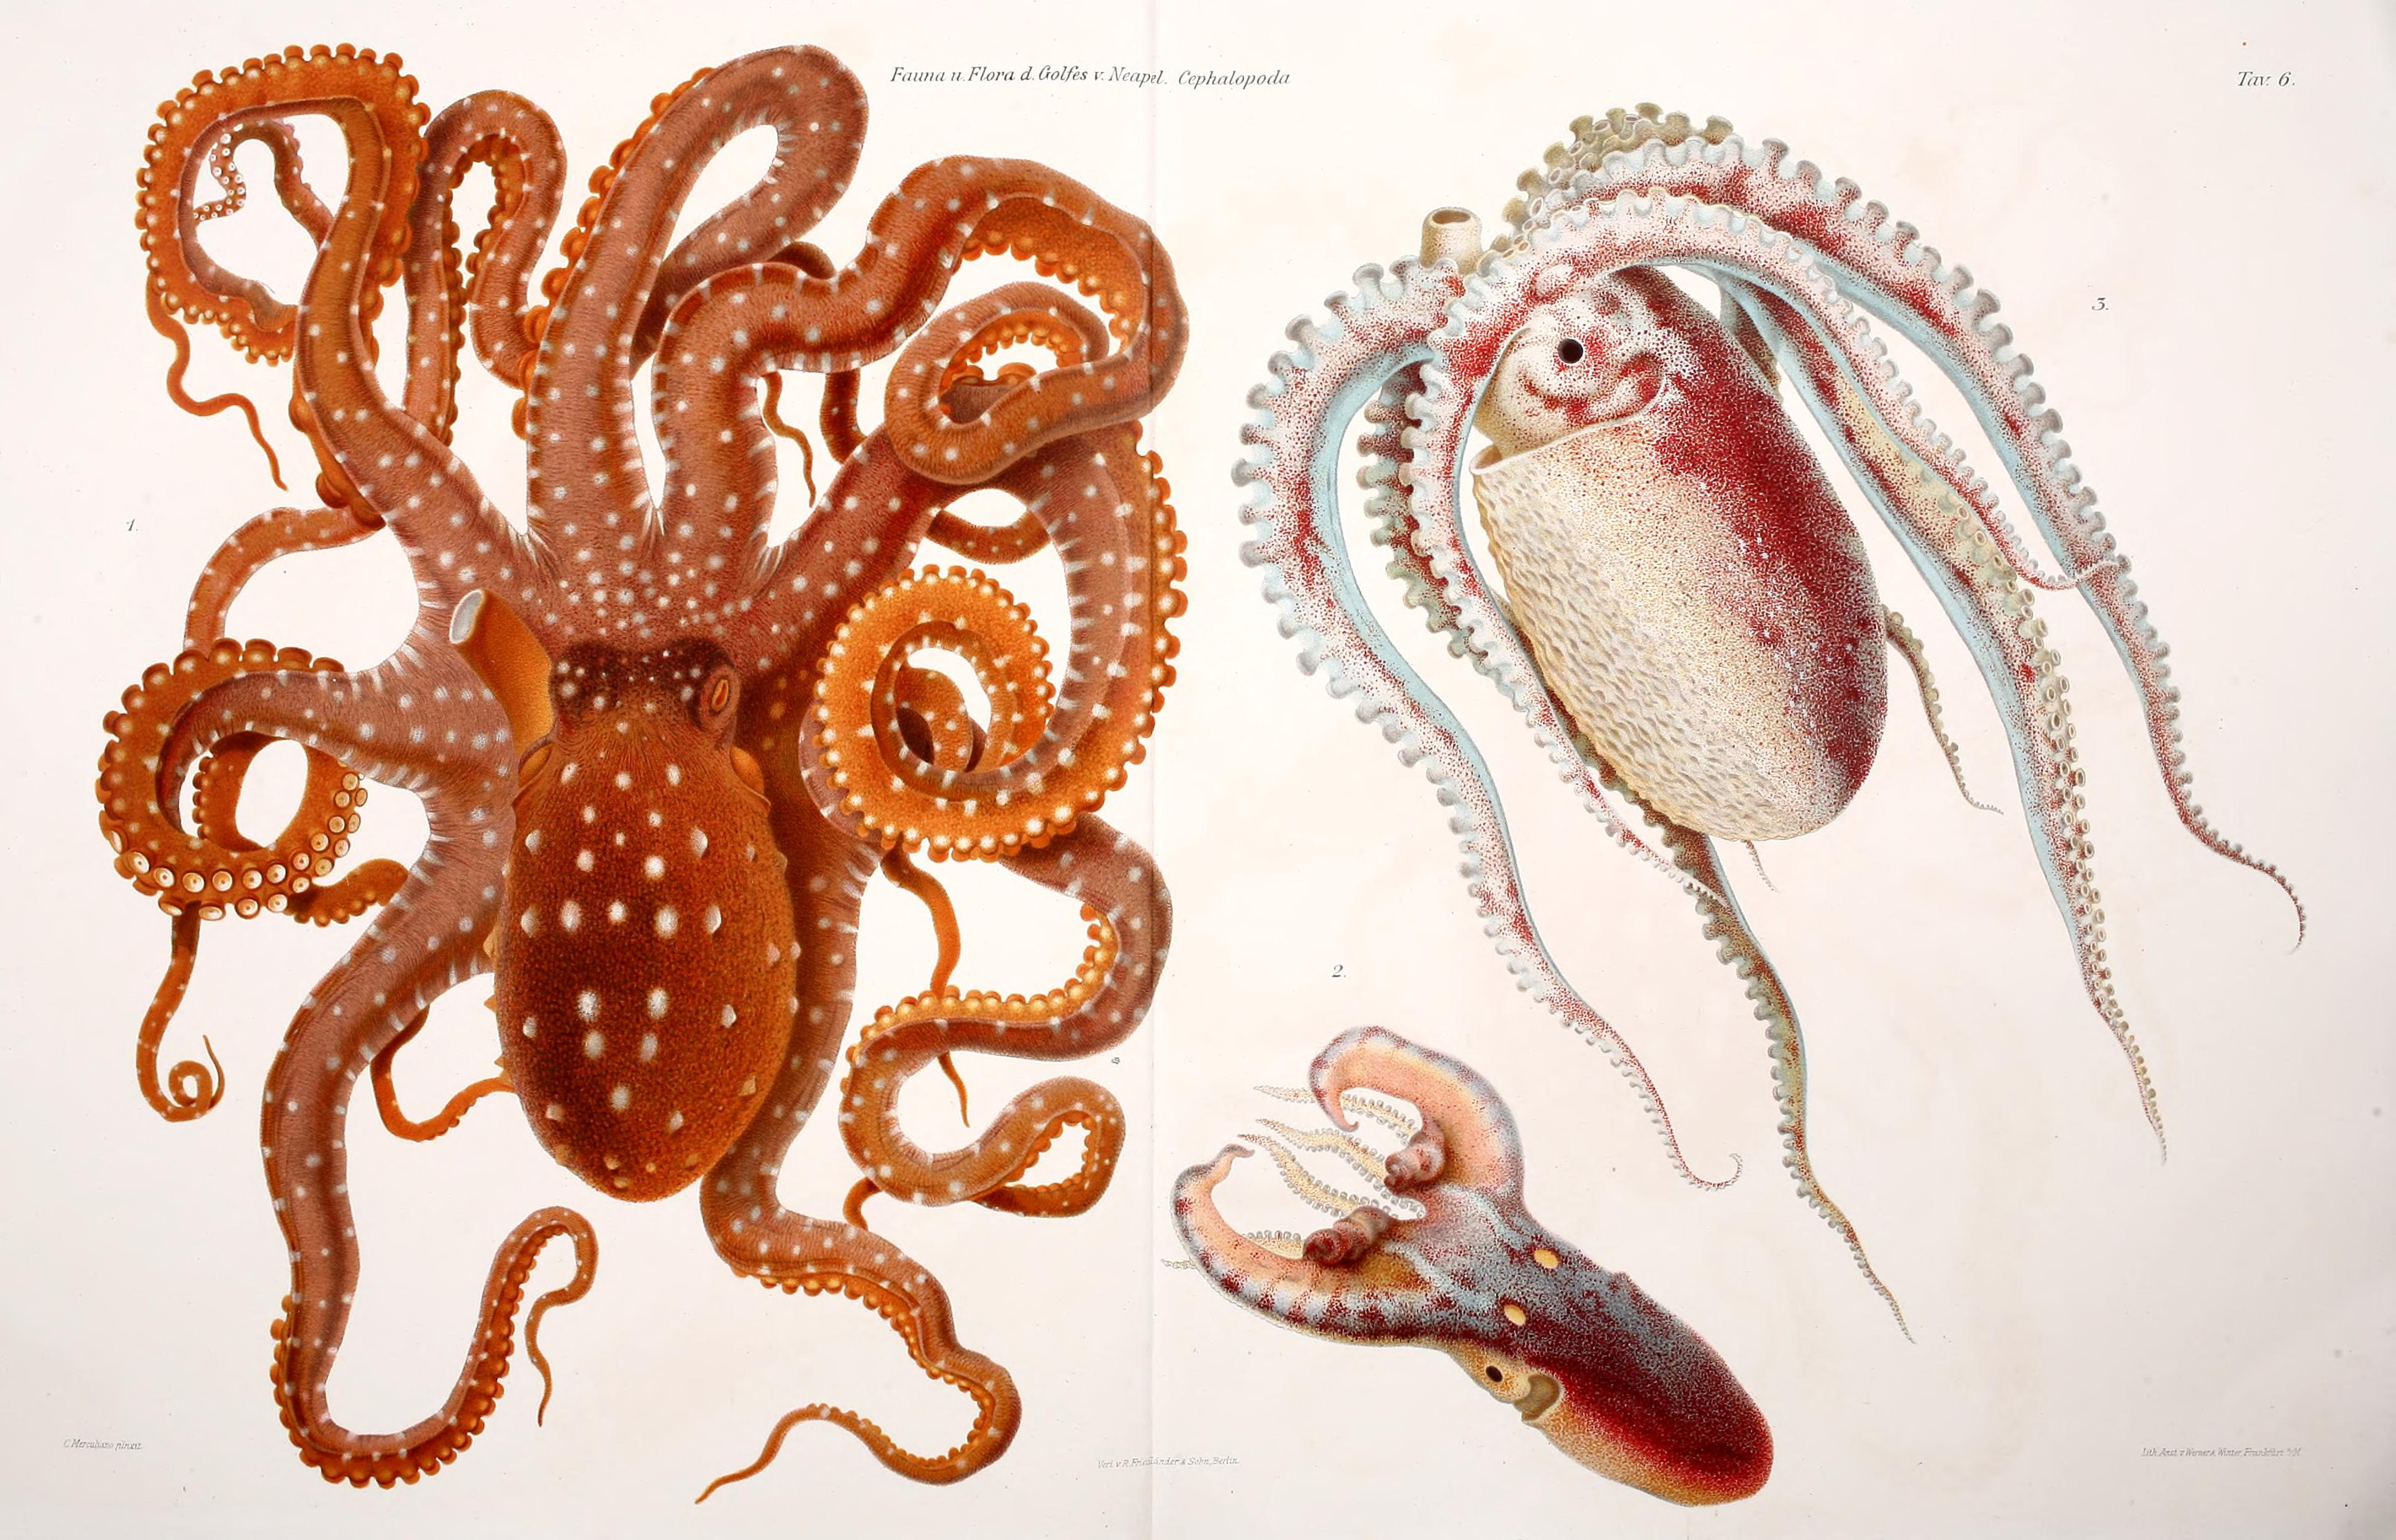 octopi and squid essay I'm in need of a topic for my biology extended essay atlanticus lepidoteuthis grimaldii octopus and squid done ecology topic needed for.